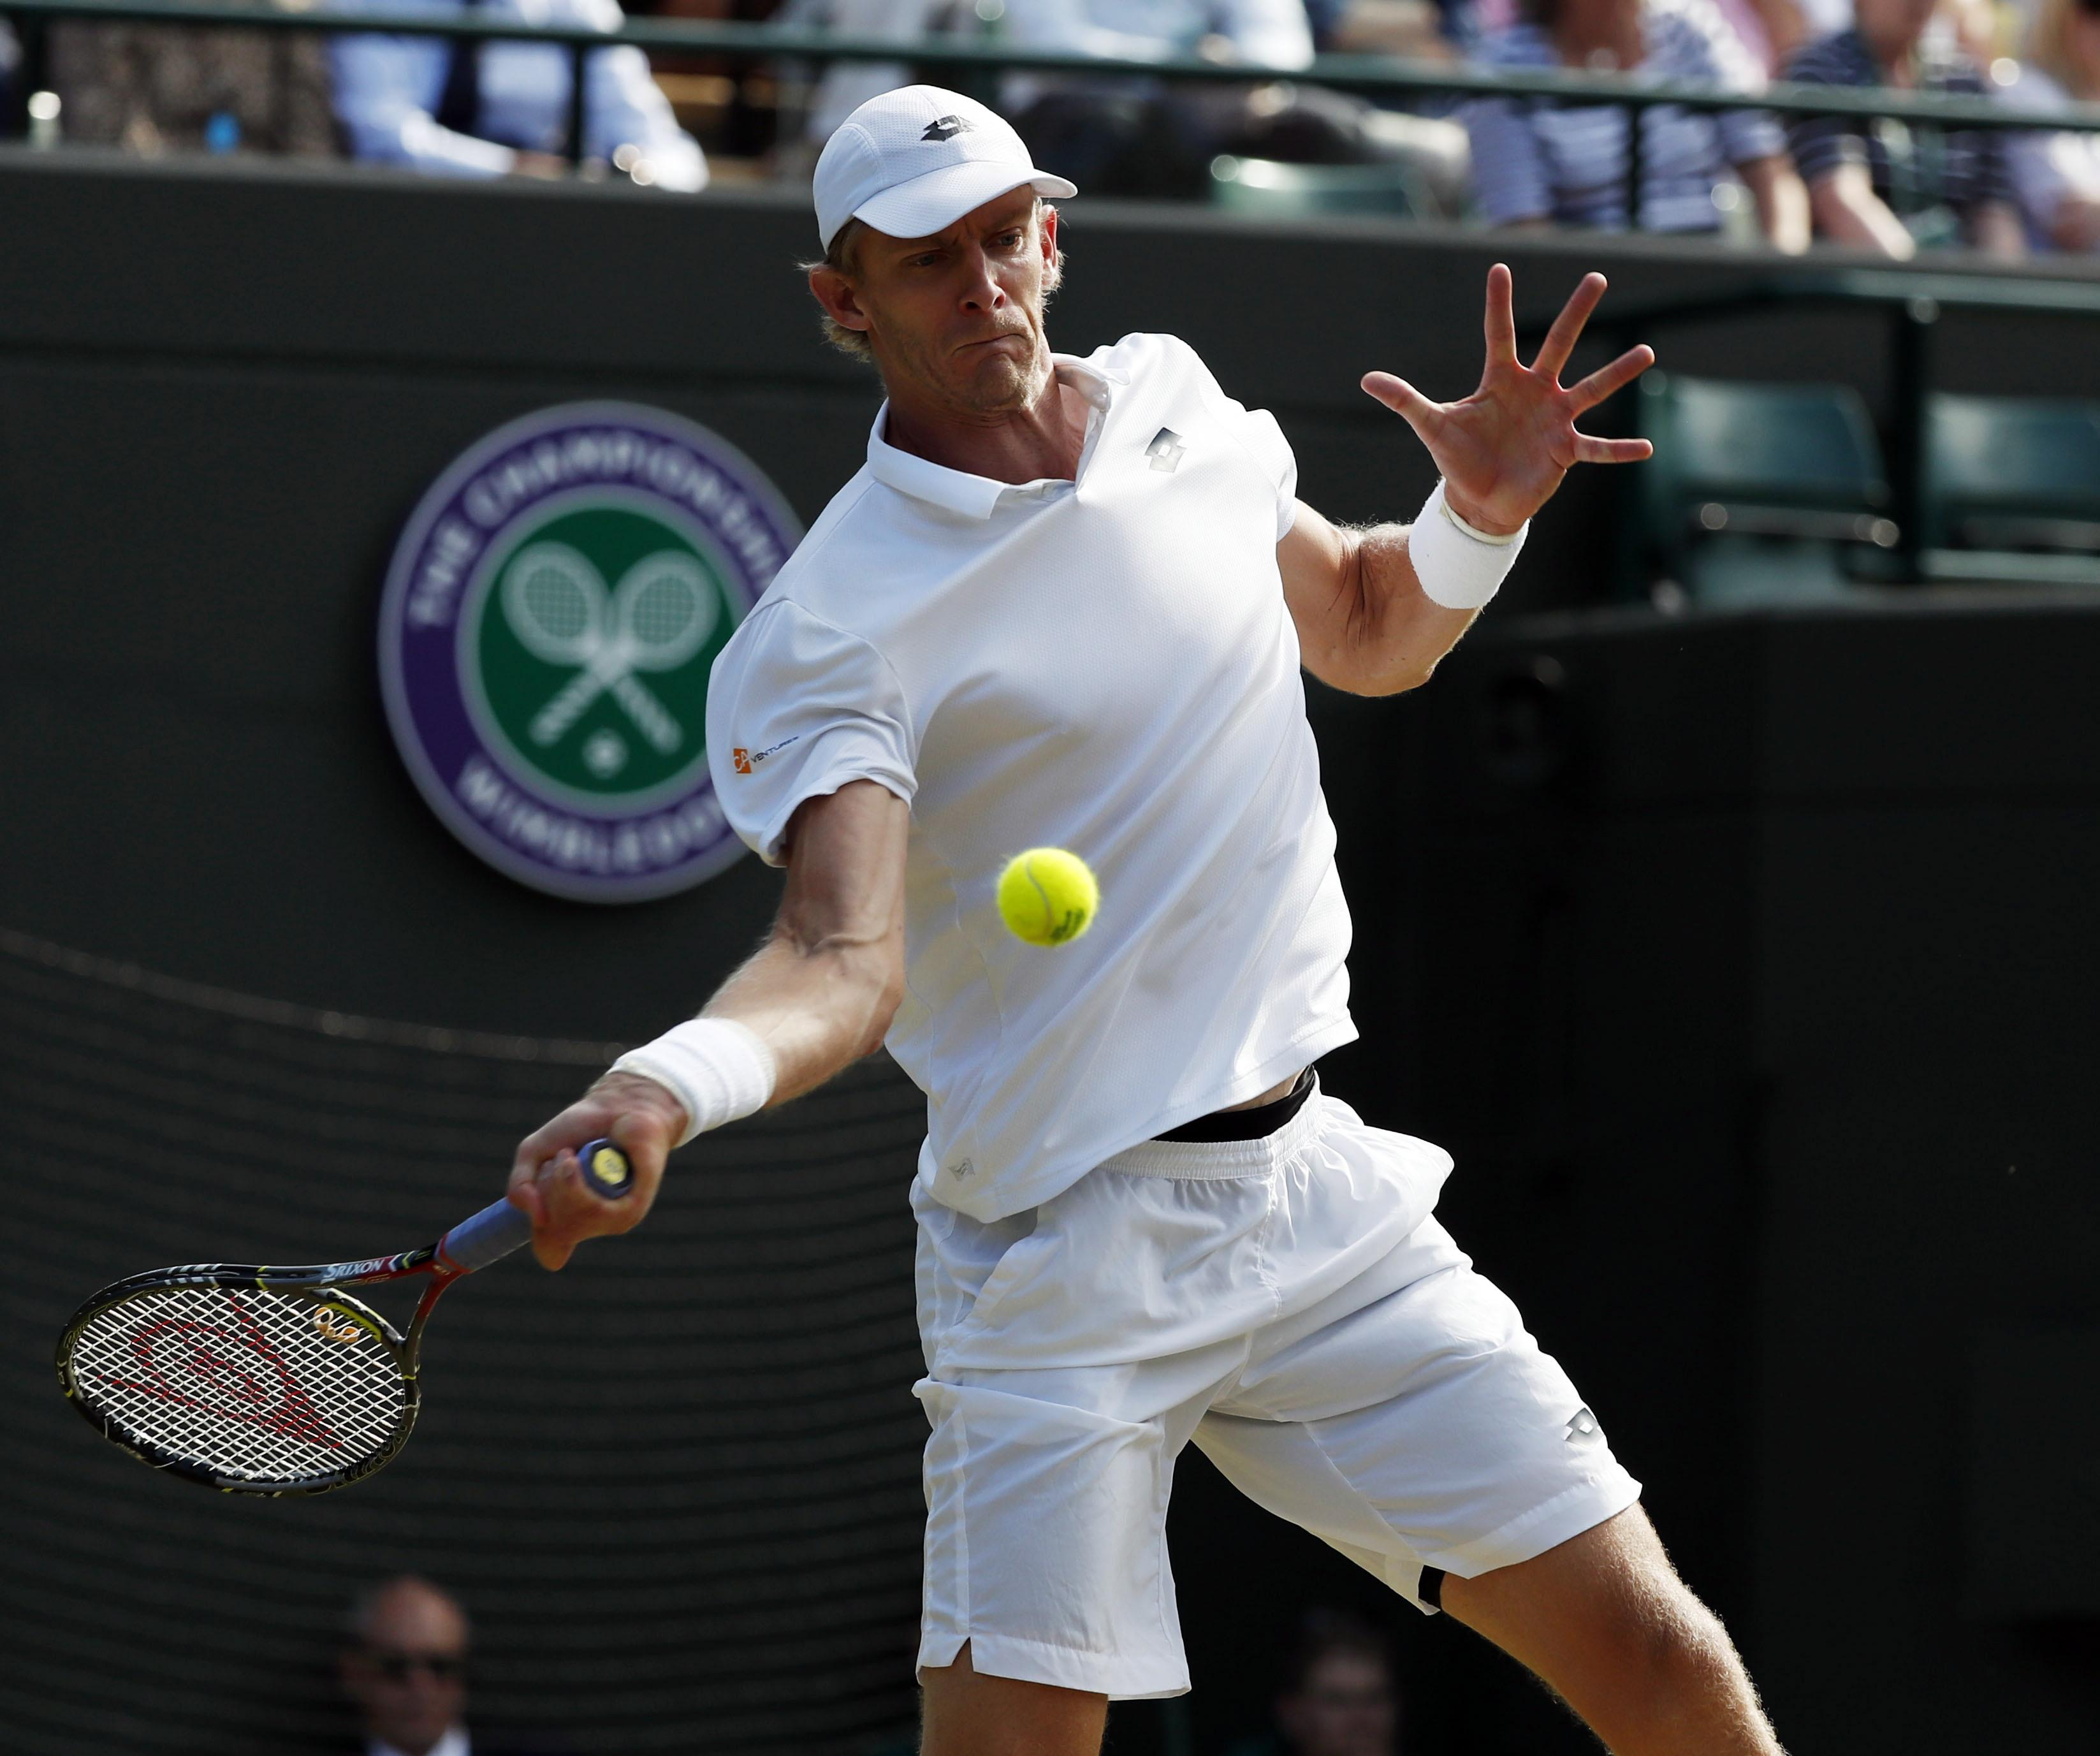 It is the first time that US Open finalist Anderson has reached the last-four at Wimbledon